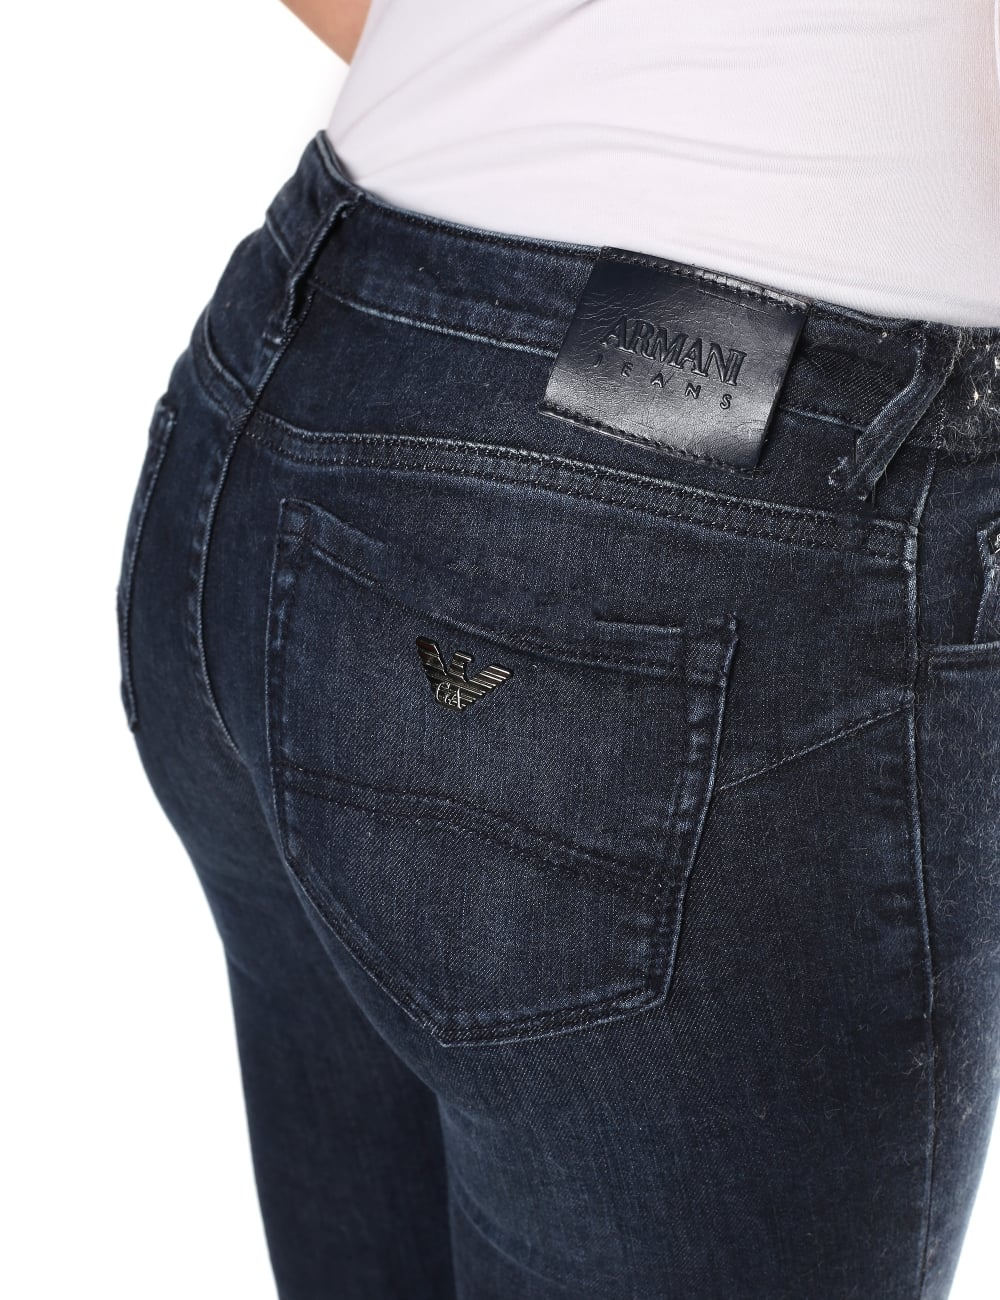 free shipping 05a33 5351f Armani Jeans Women's Push Up Fit Jean